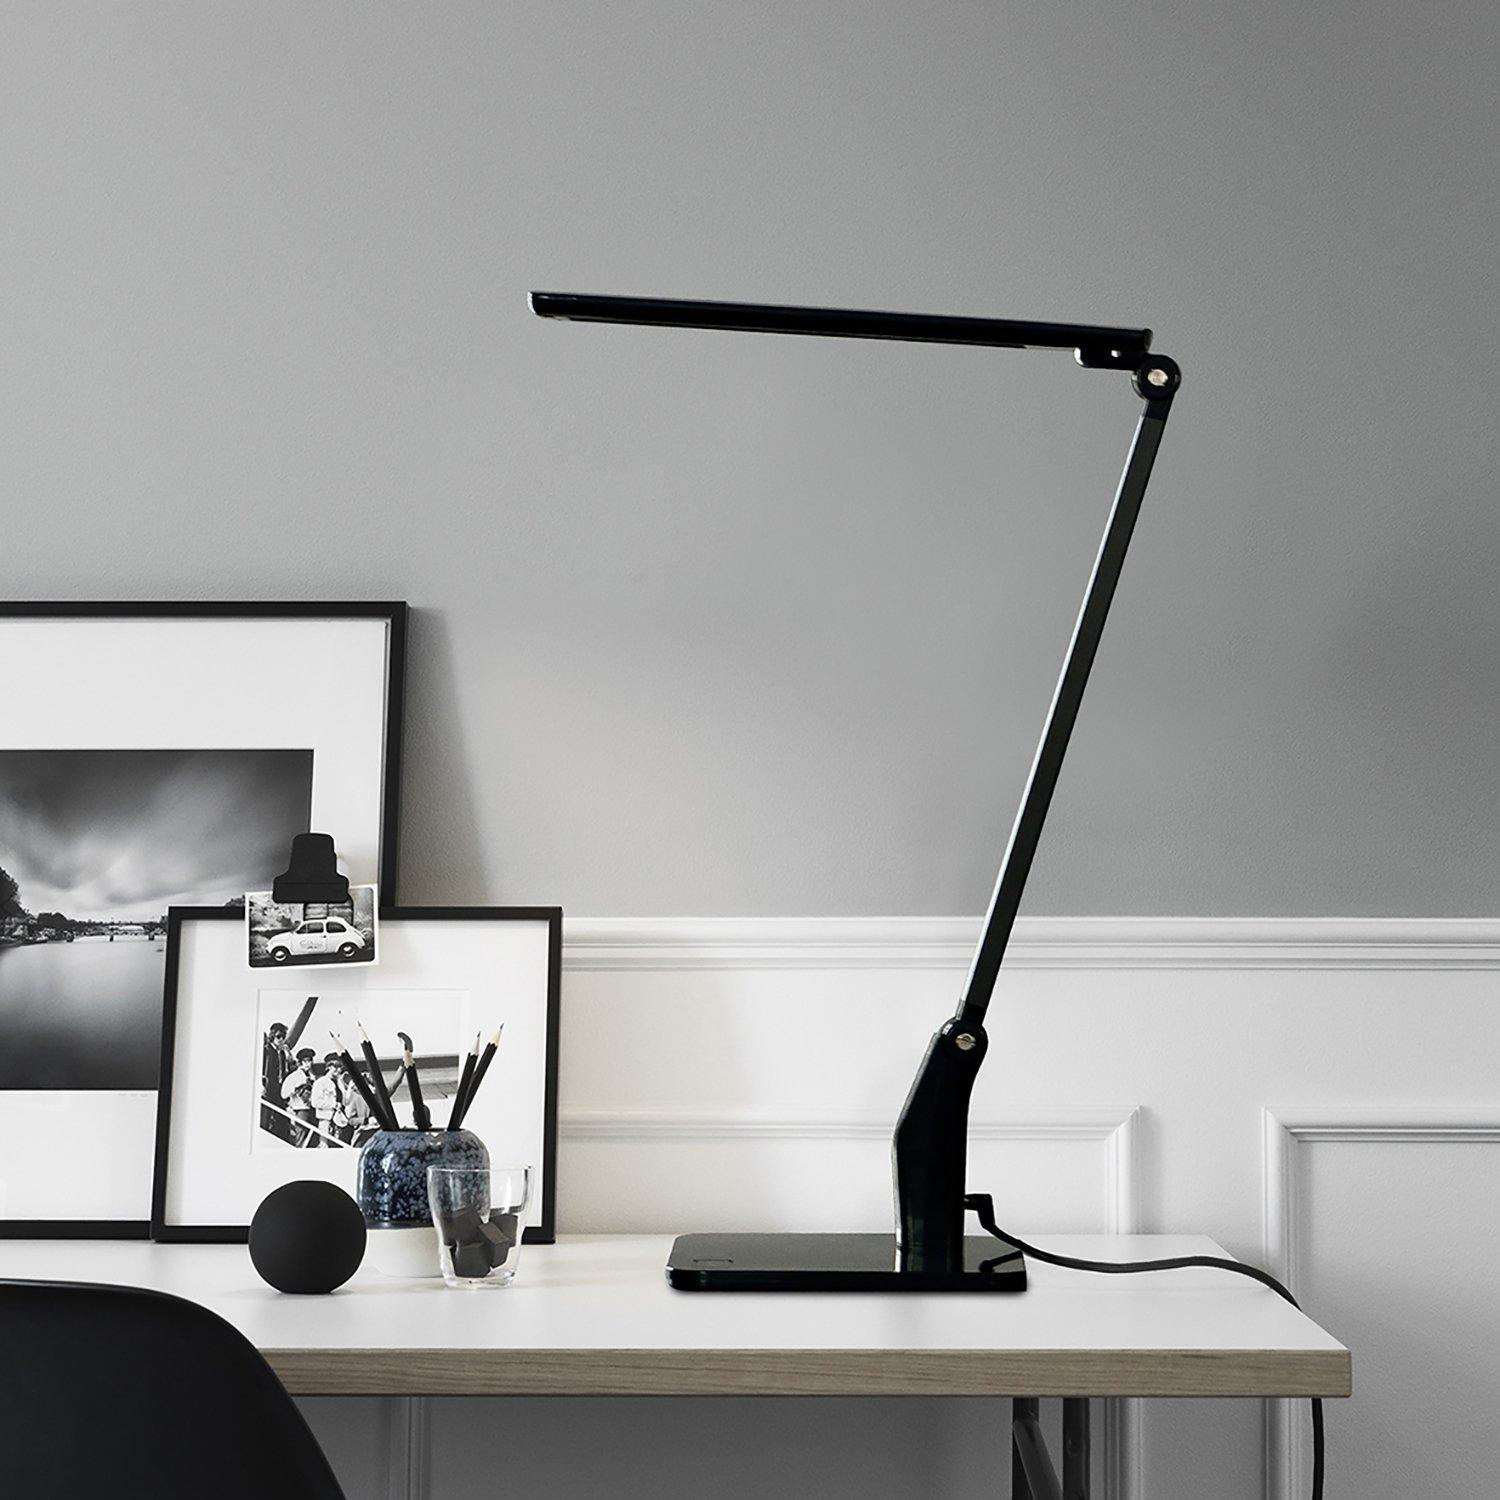 3-D Adjustable LED Desk Lamp Omaker Home Energy Saving LED Desk Lamp